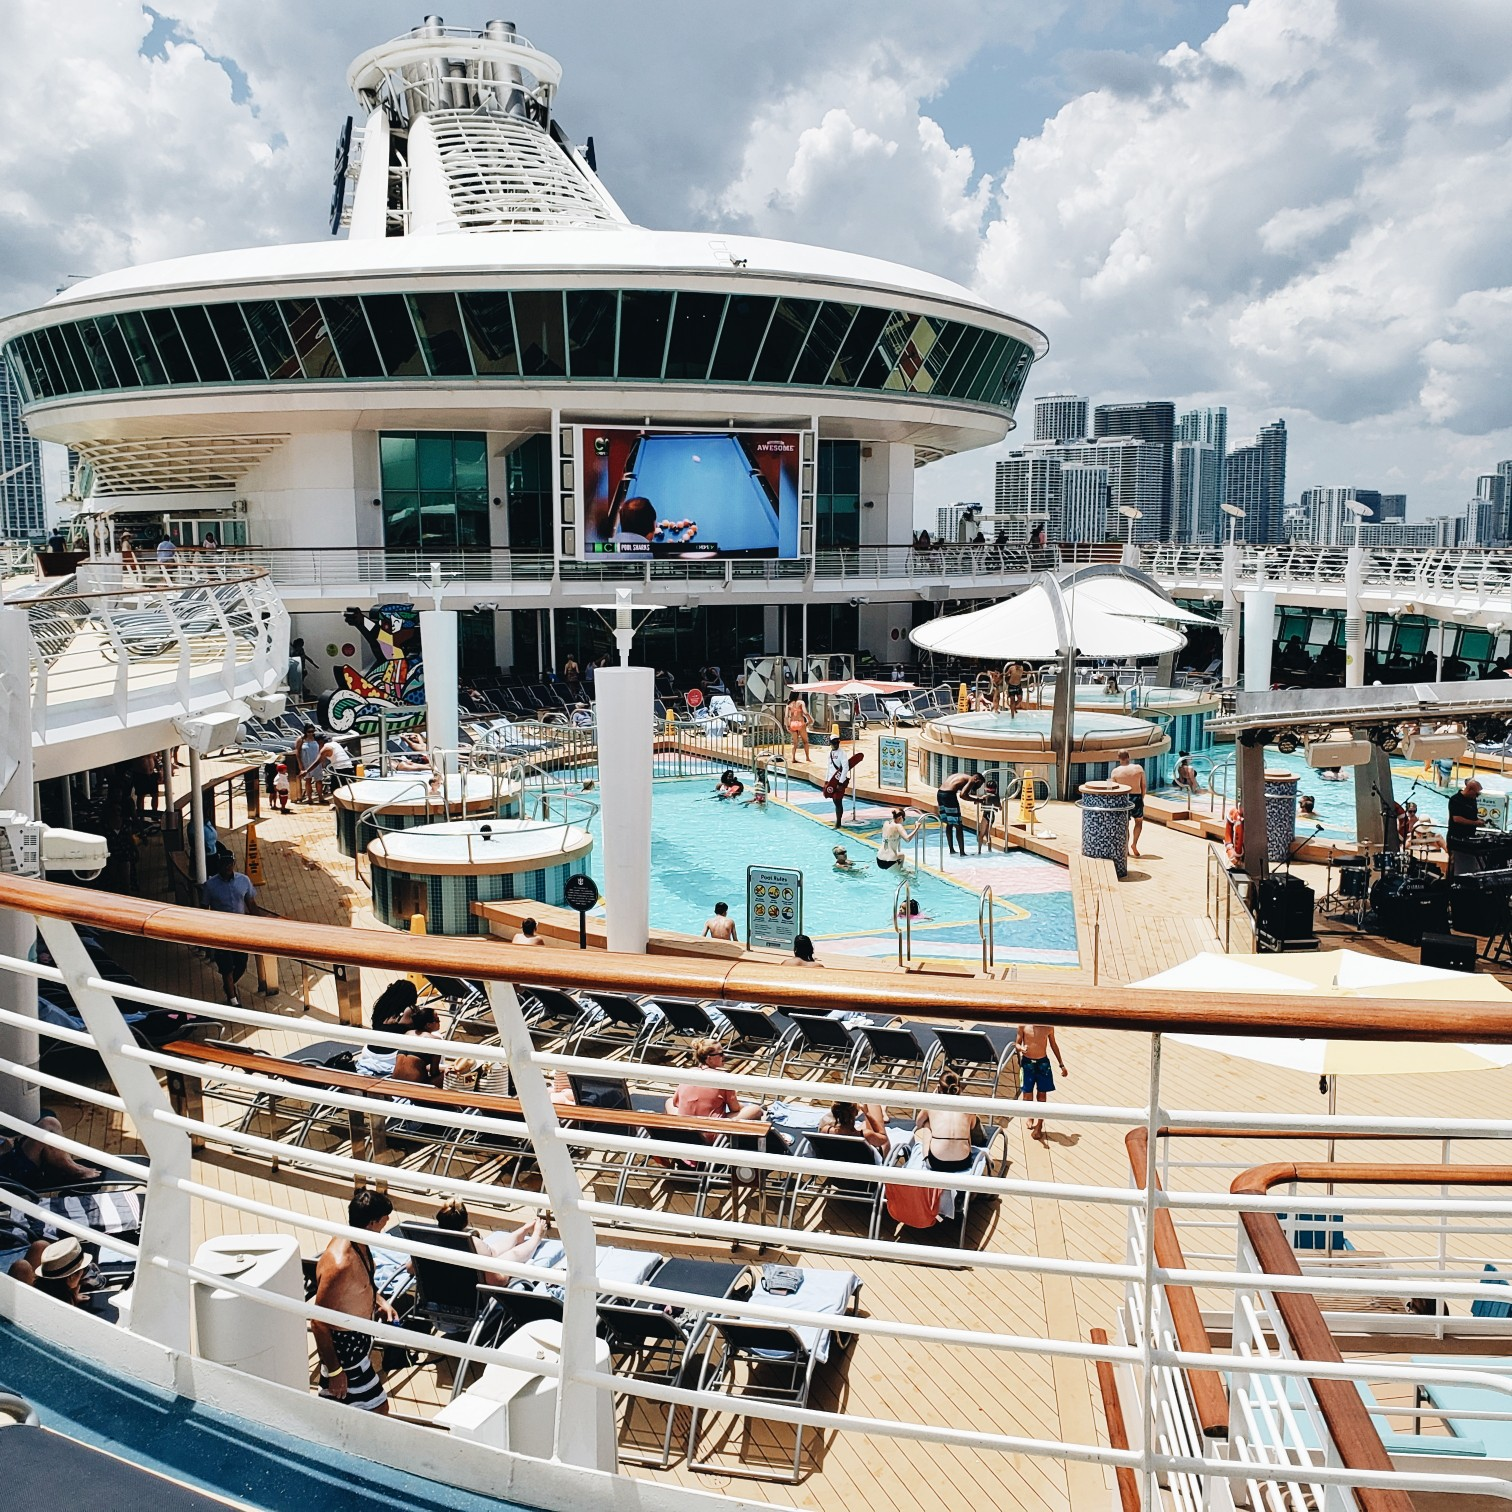 Royal Caribbean Mariner of the Seas Pool Deck With Giant TV Screen